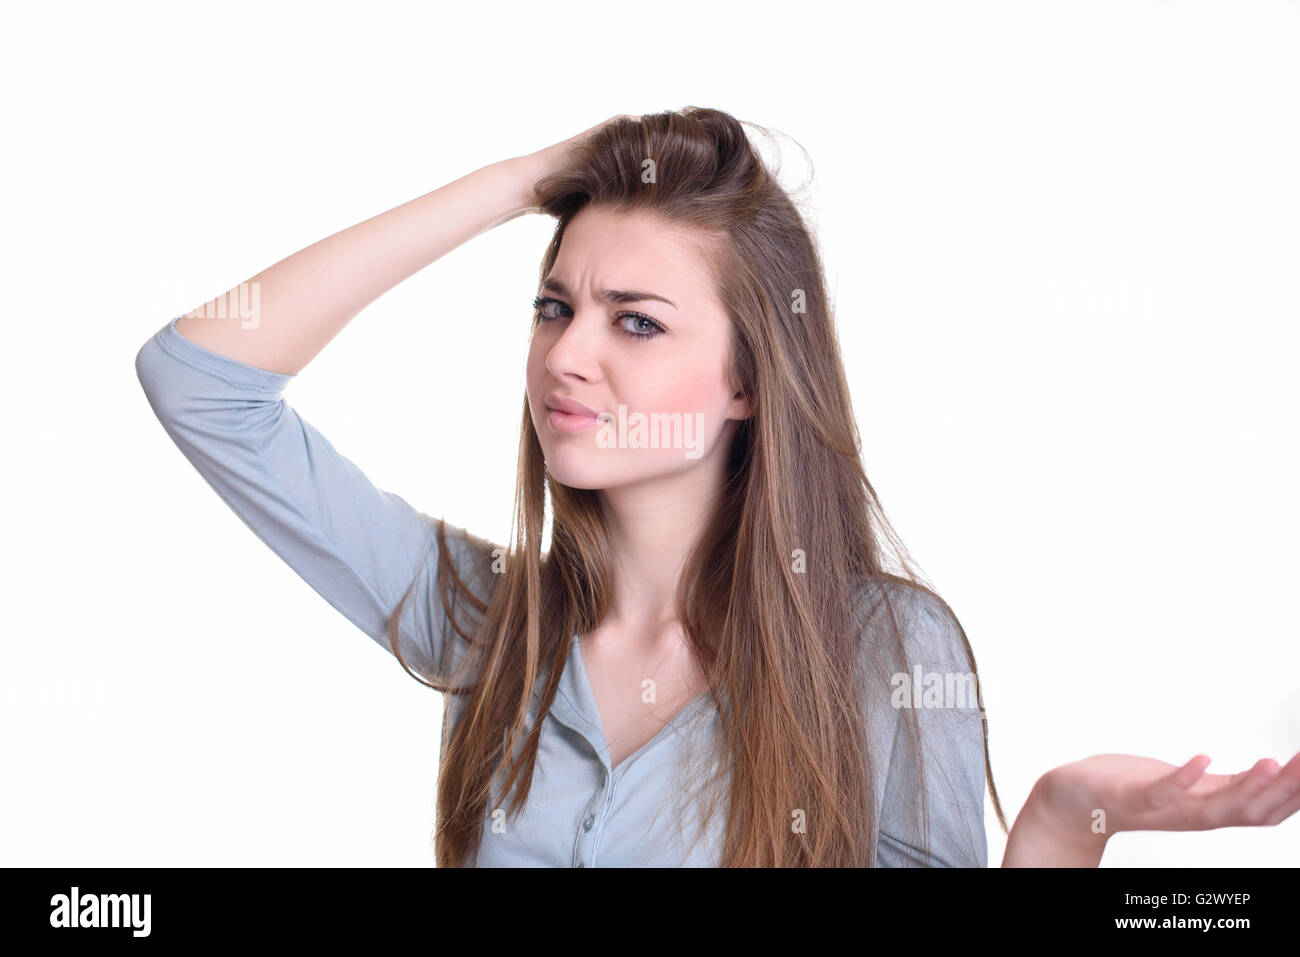 Confused young woman - Stock Image